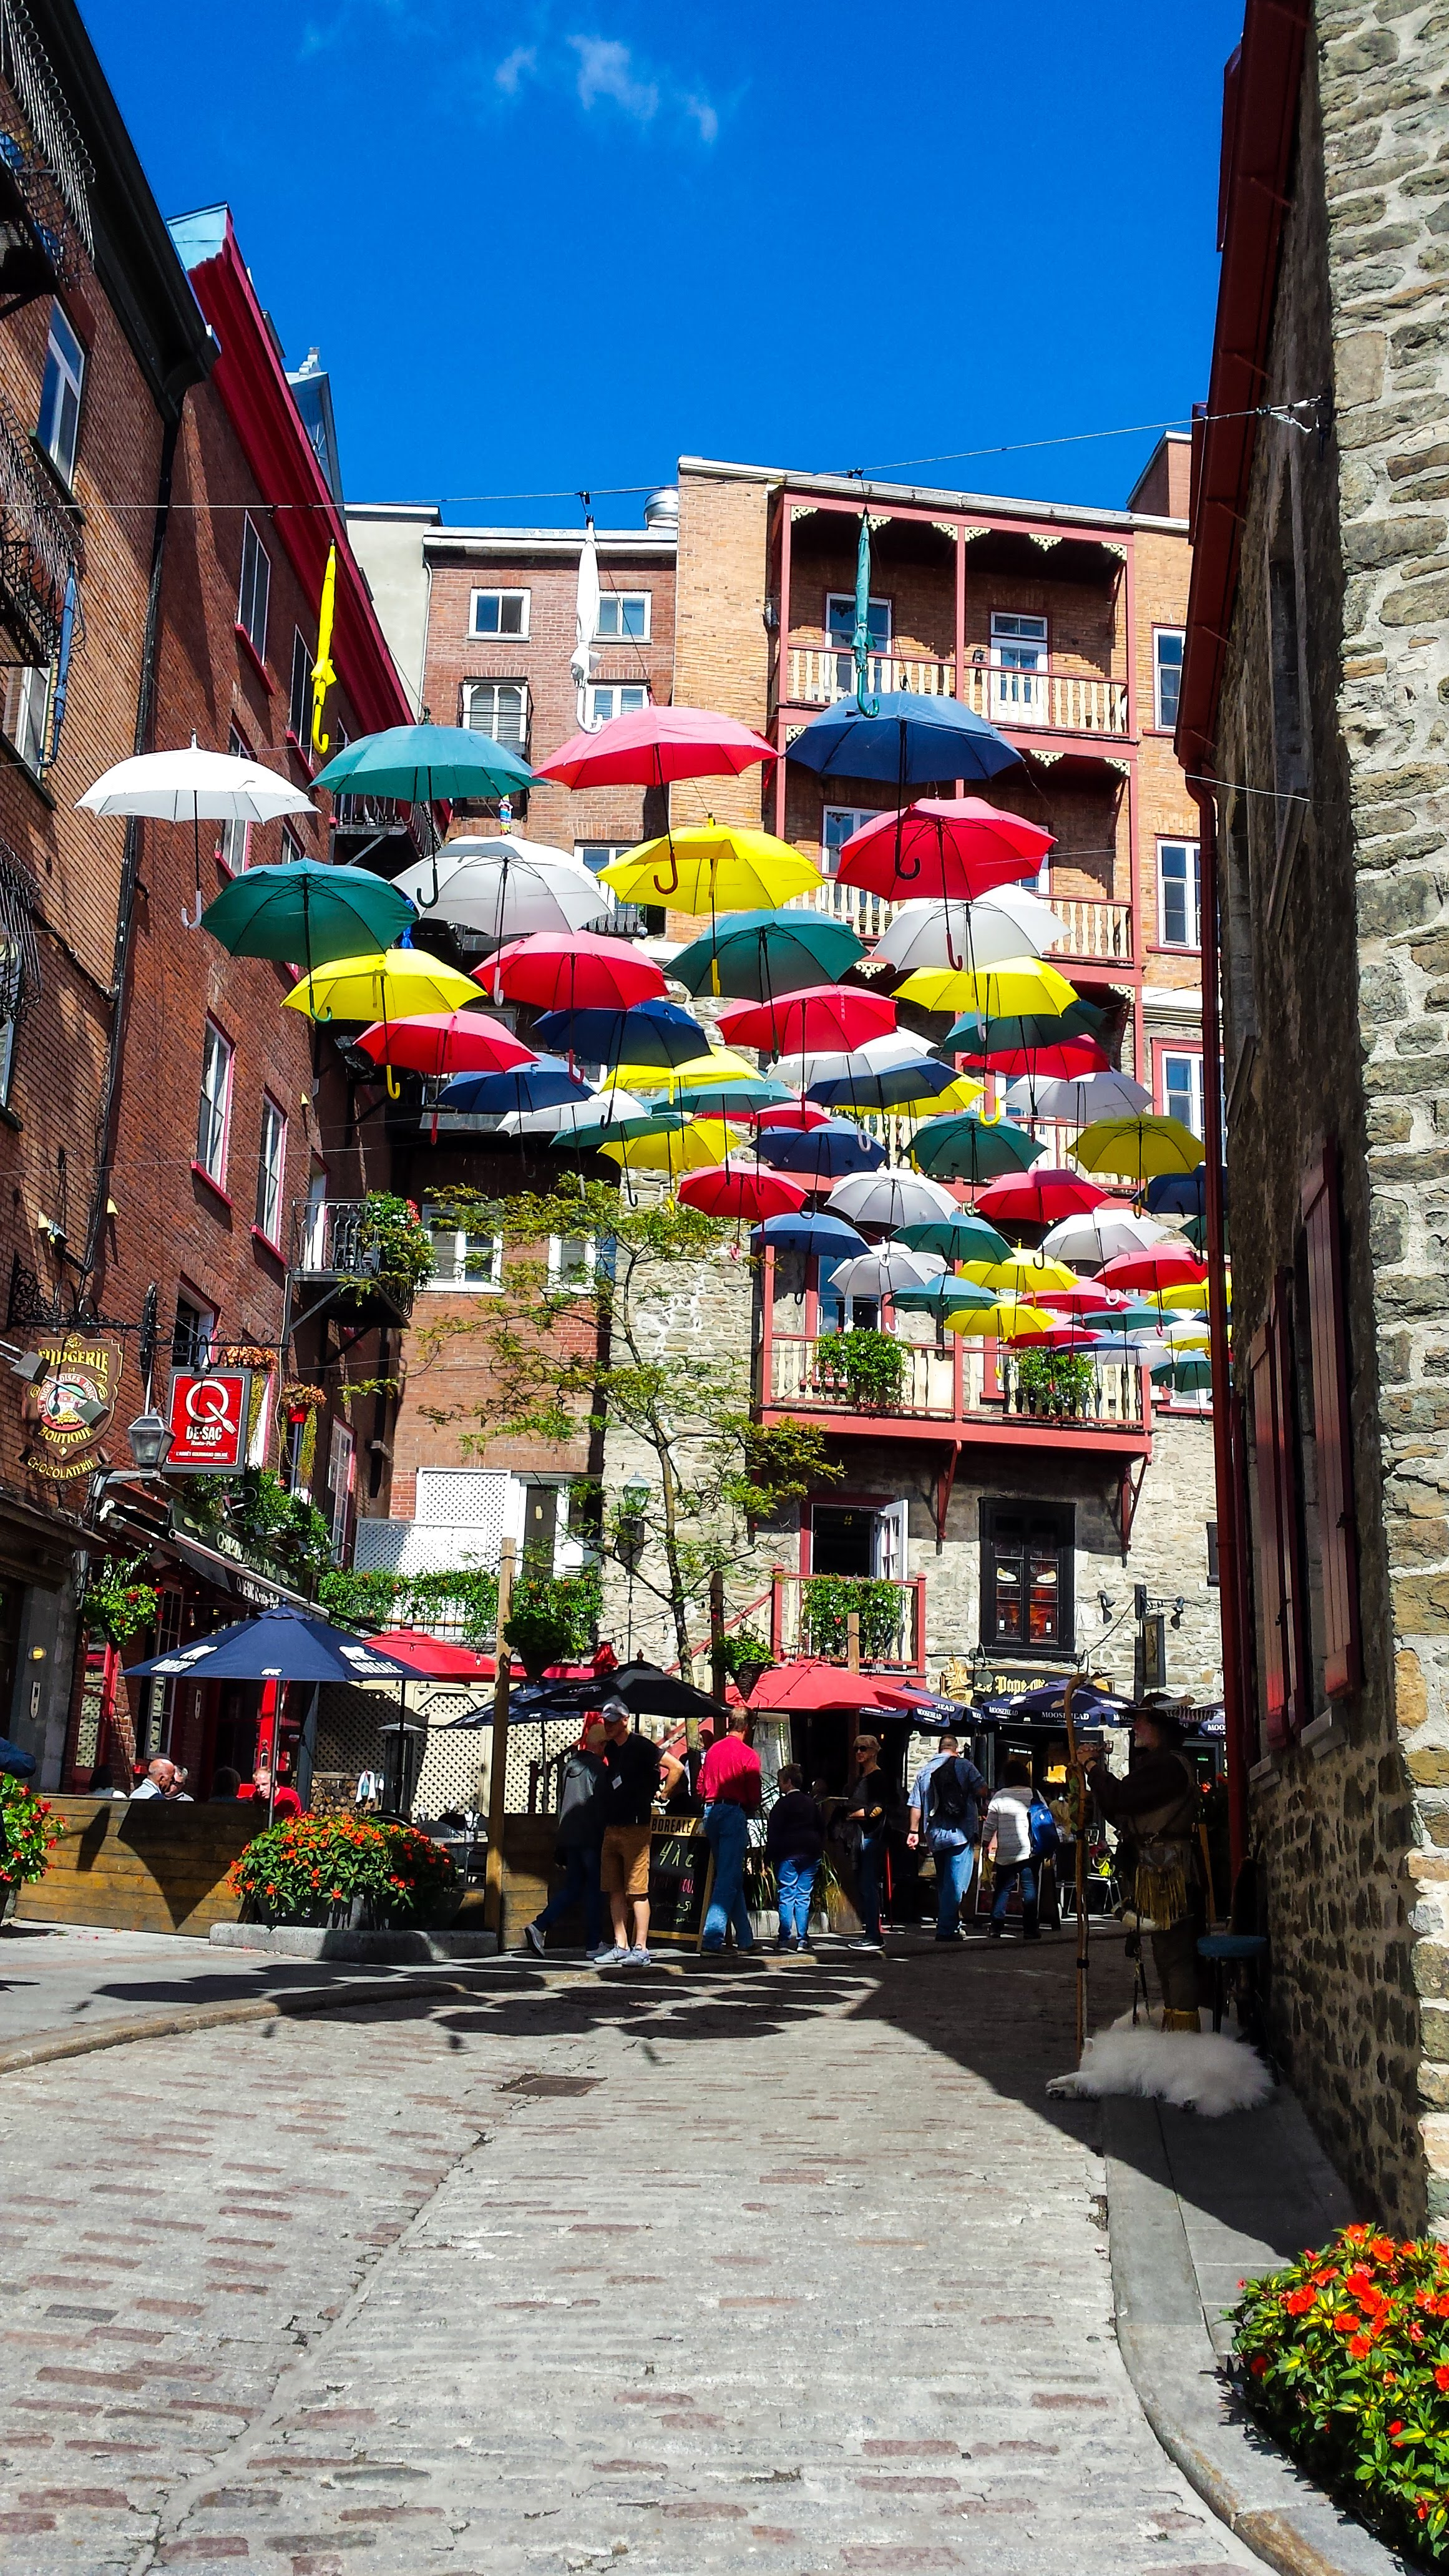 Canada Quebec City travel guide travel tips city guide things to do itinerary sightseeing highlights petit champlain